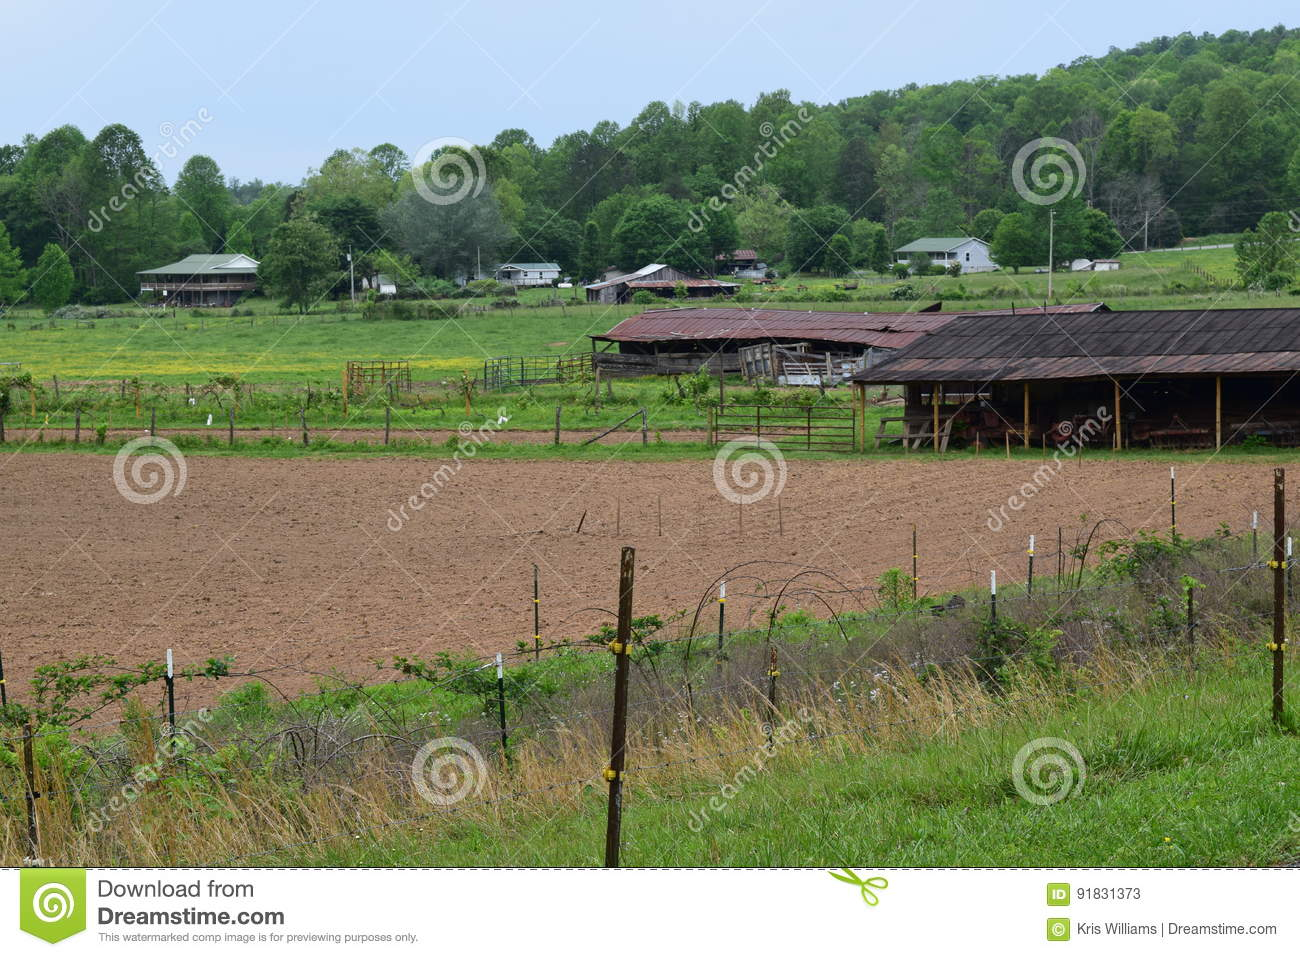 Western NC mountain farm